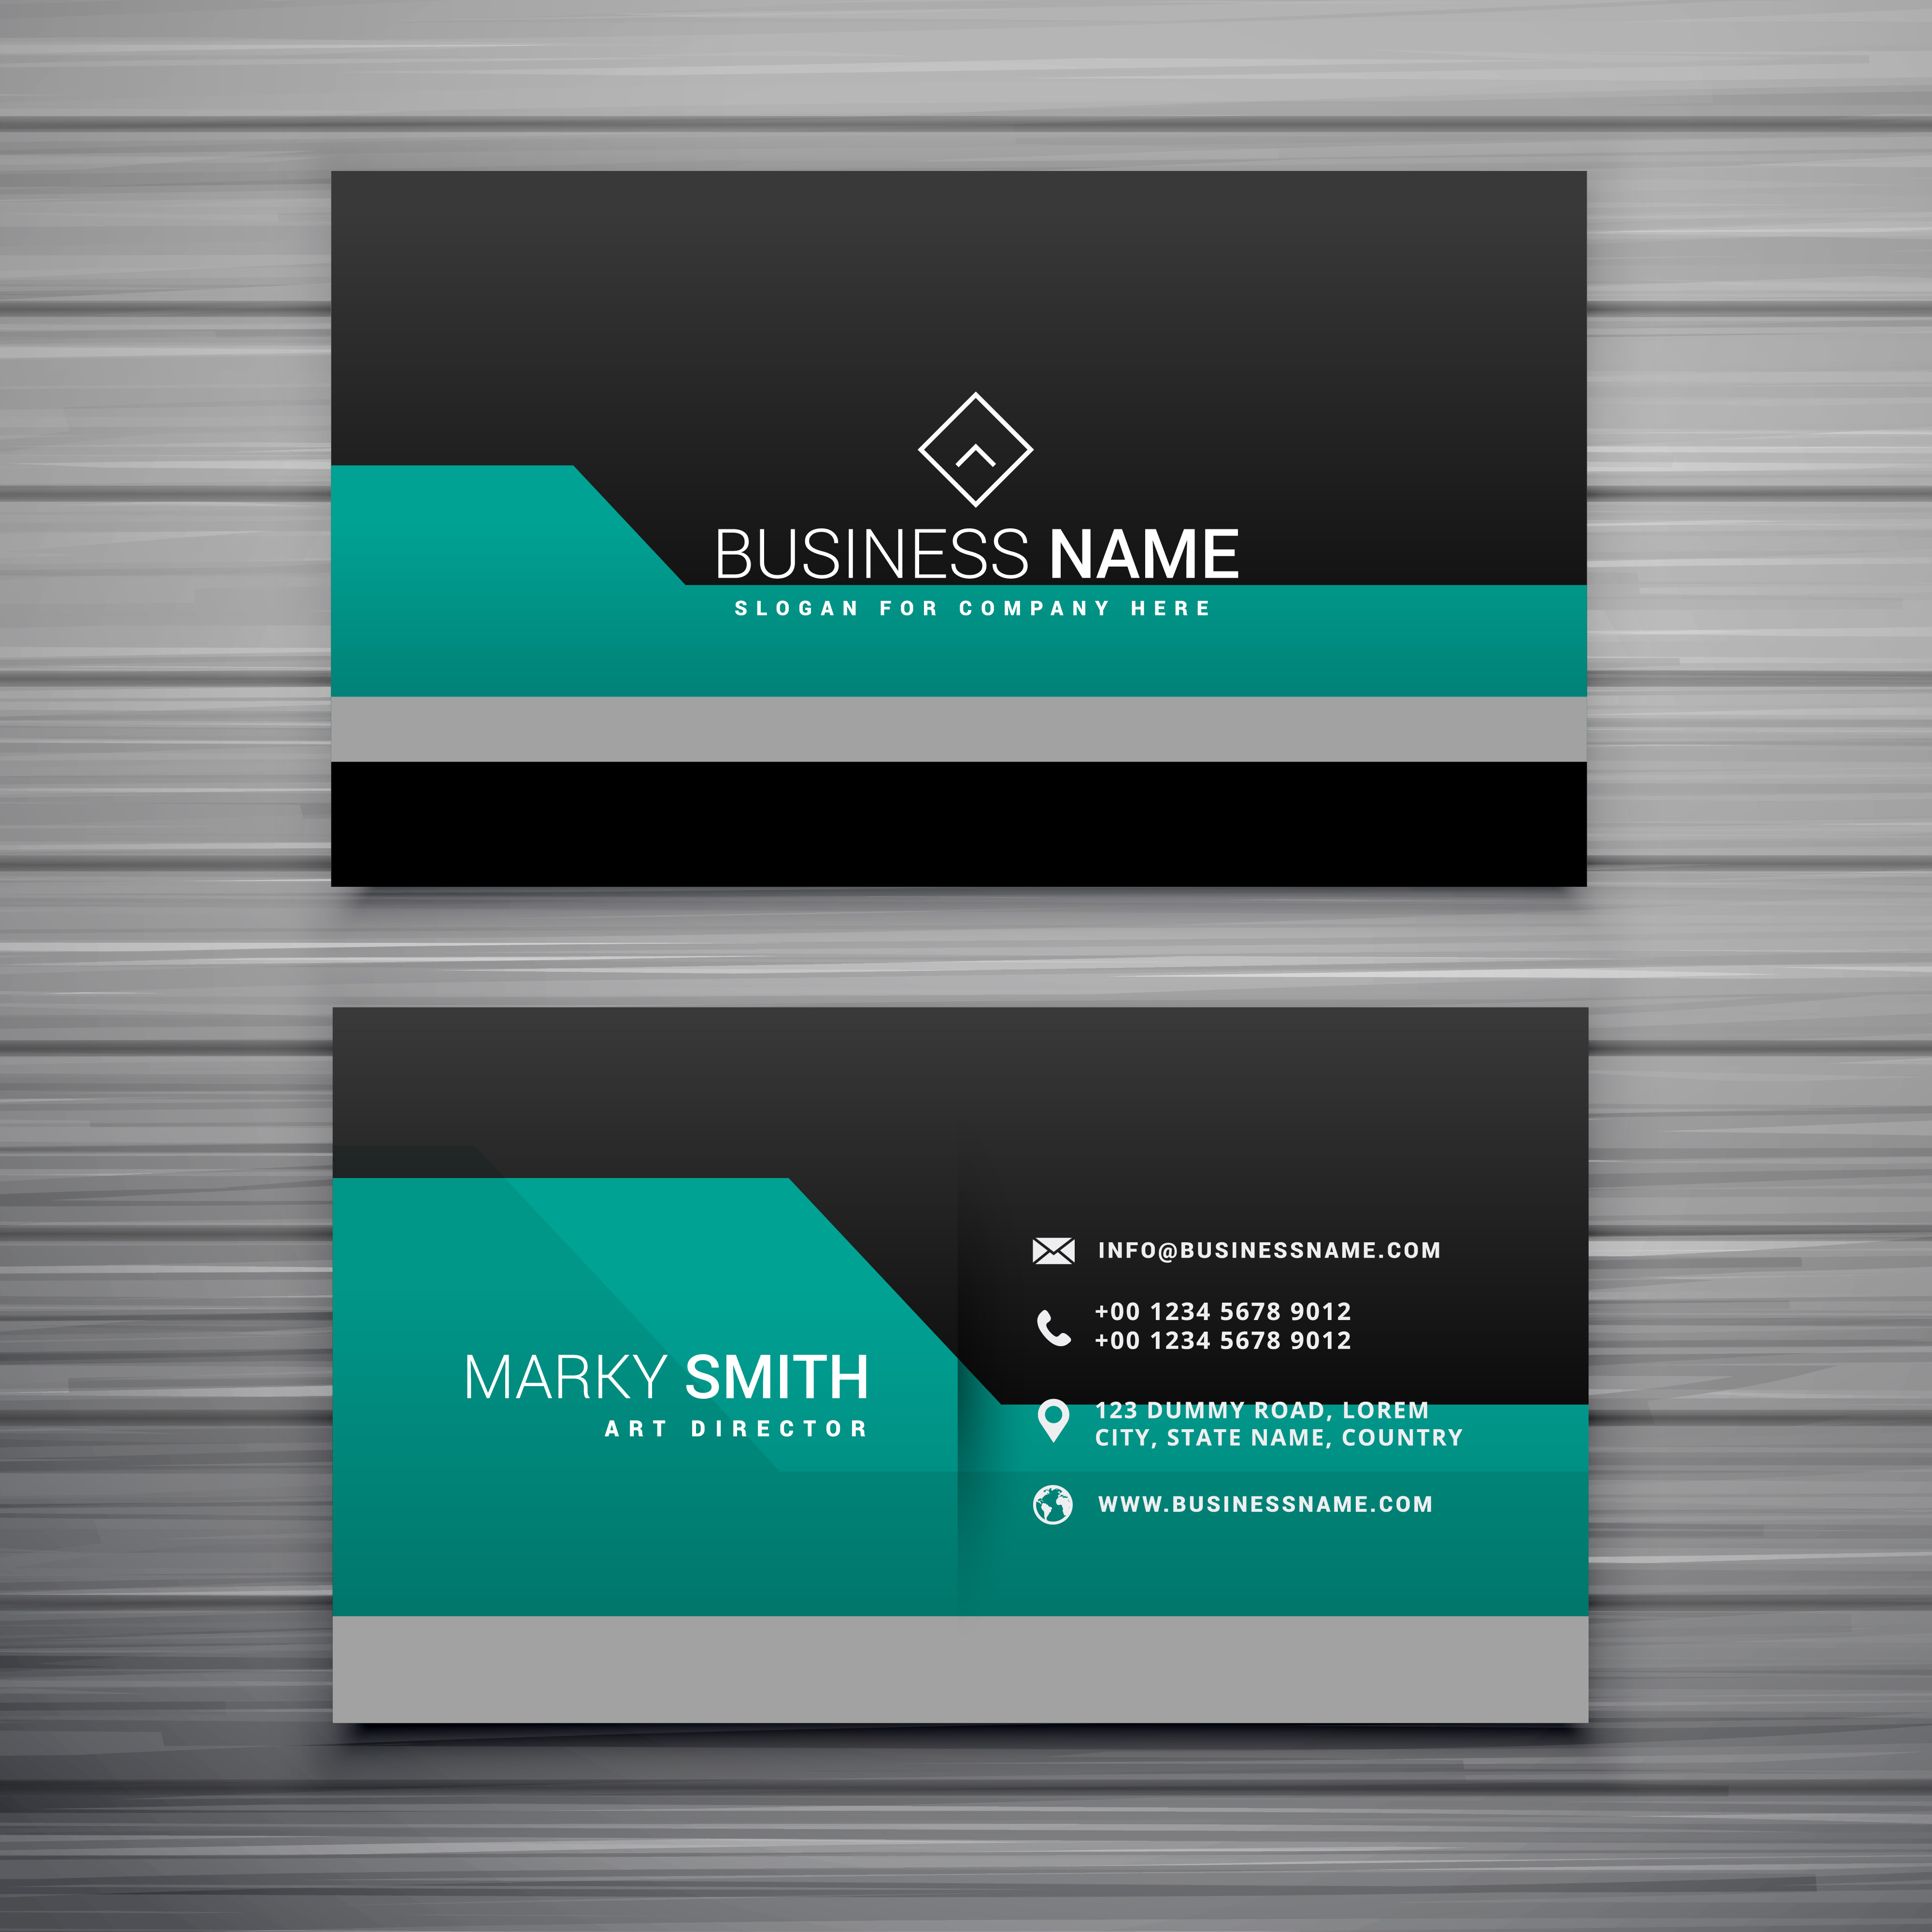 Business Card Layout Template: Elegant Business Card Template Design